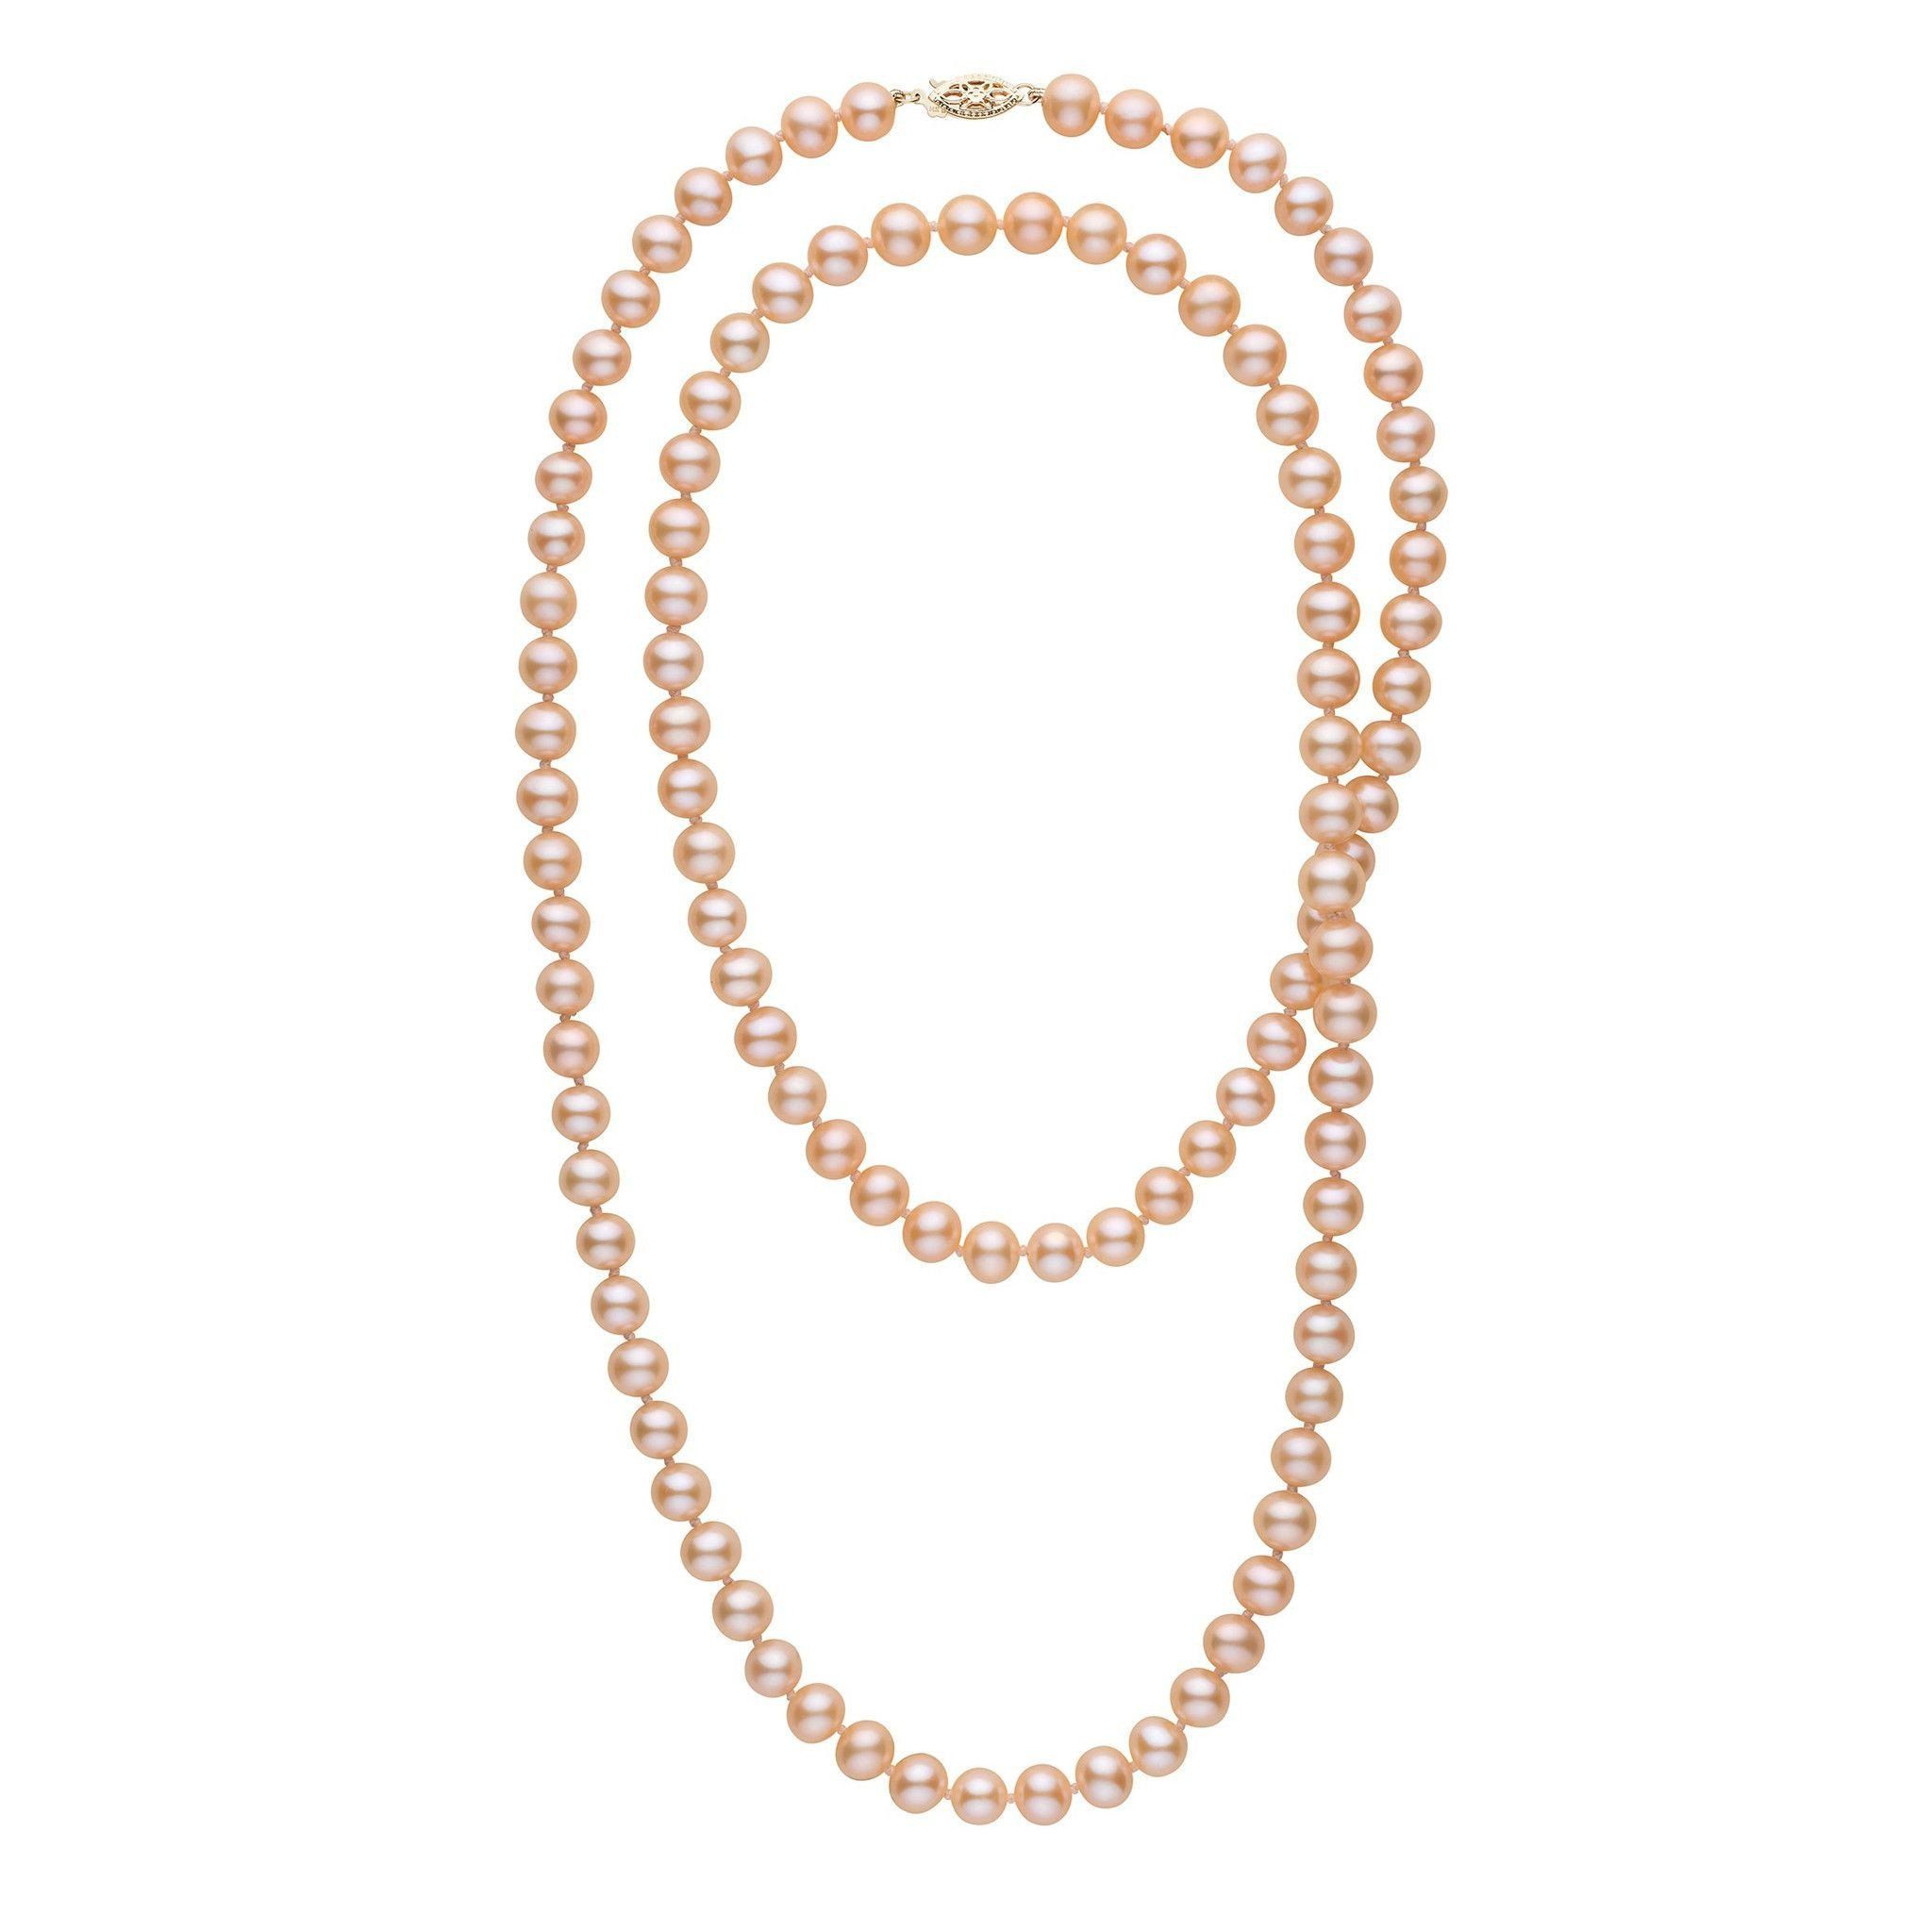 35-inch 7.5-8.0 mm AAA Pink to Peach Freshwater Pearl Necklace